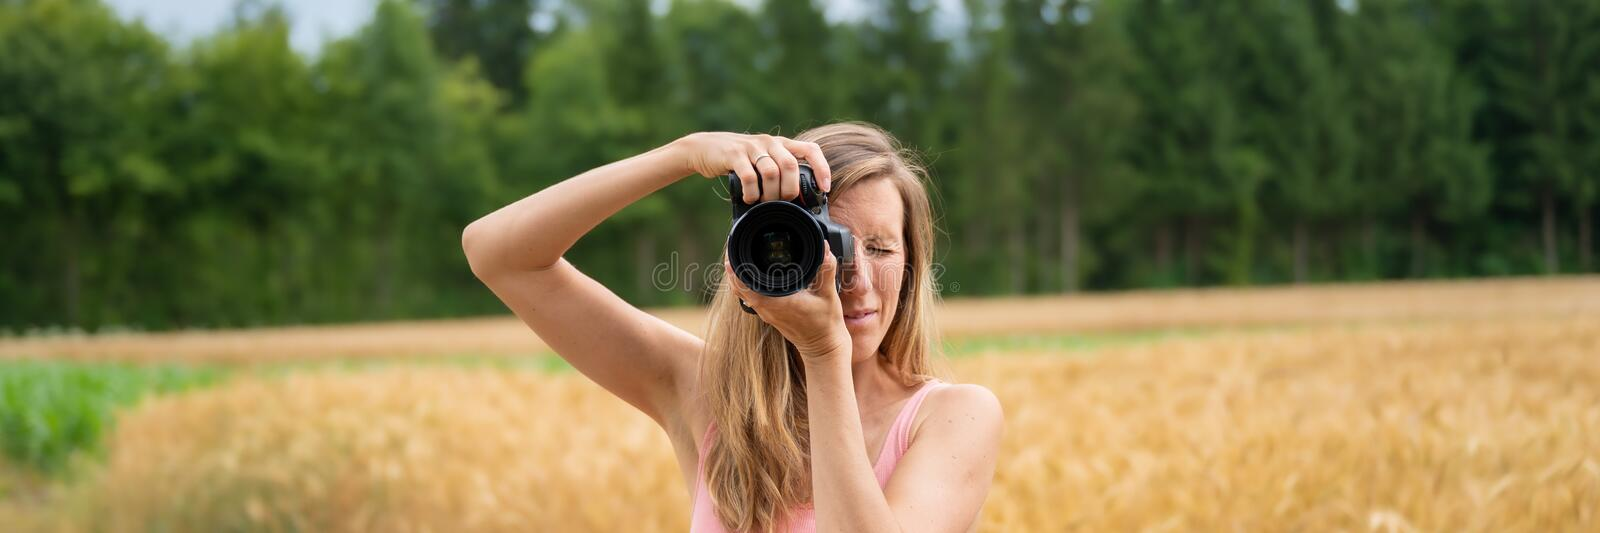 Wide view image of a young female photographer taking a photo stock image